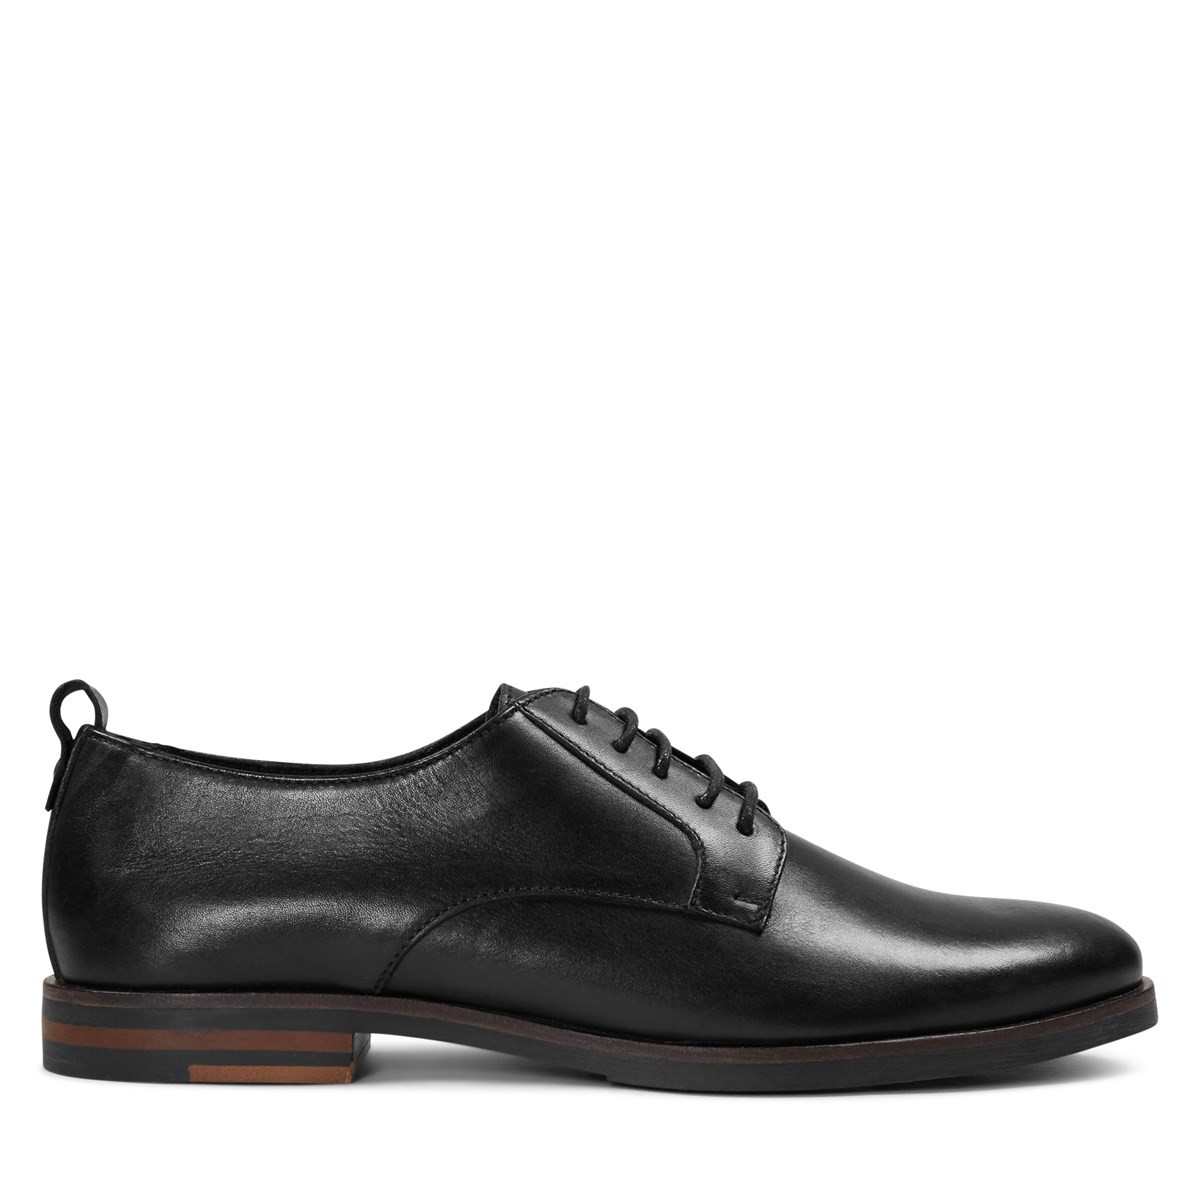 Women's Aria Lace-Up Shoes in Black